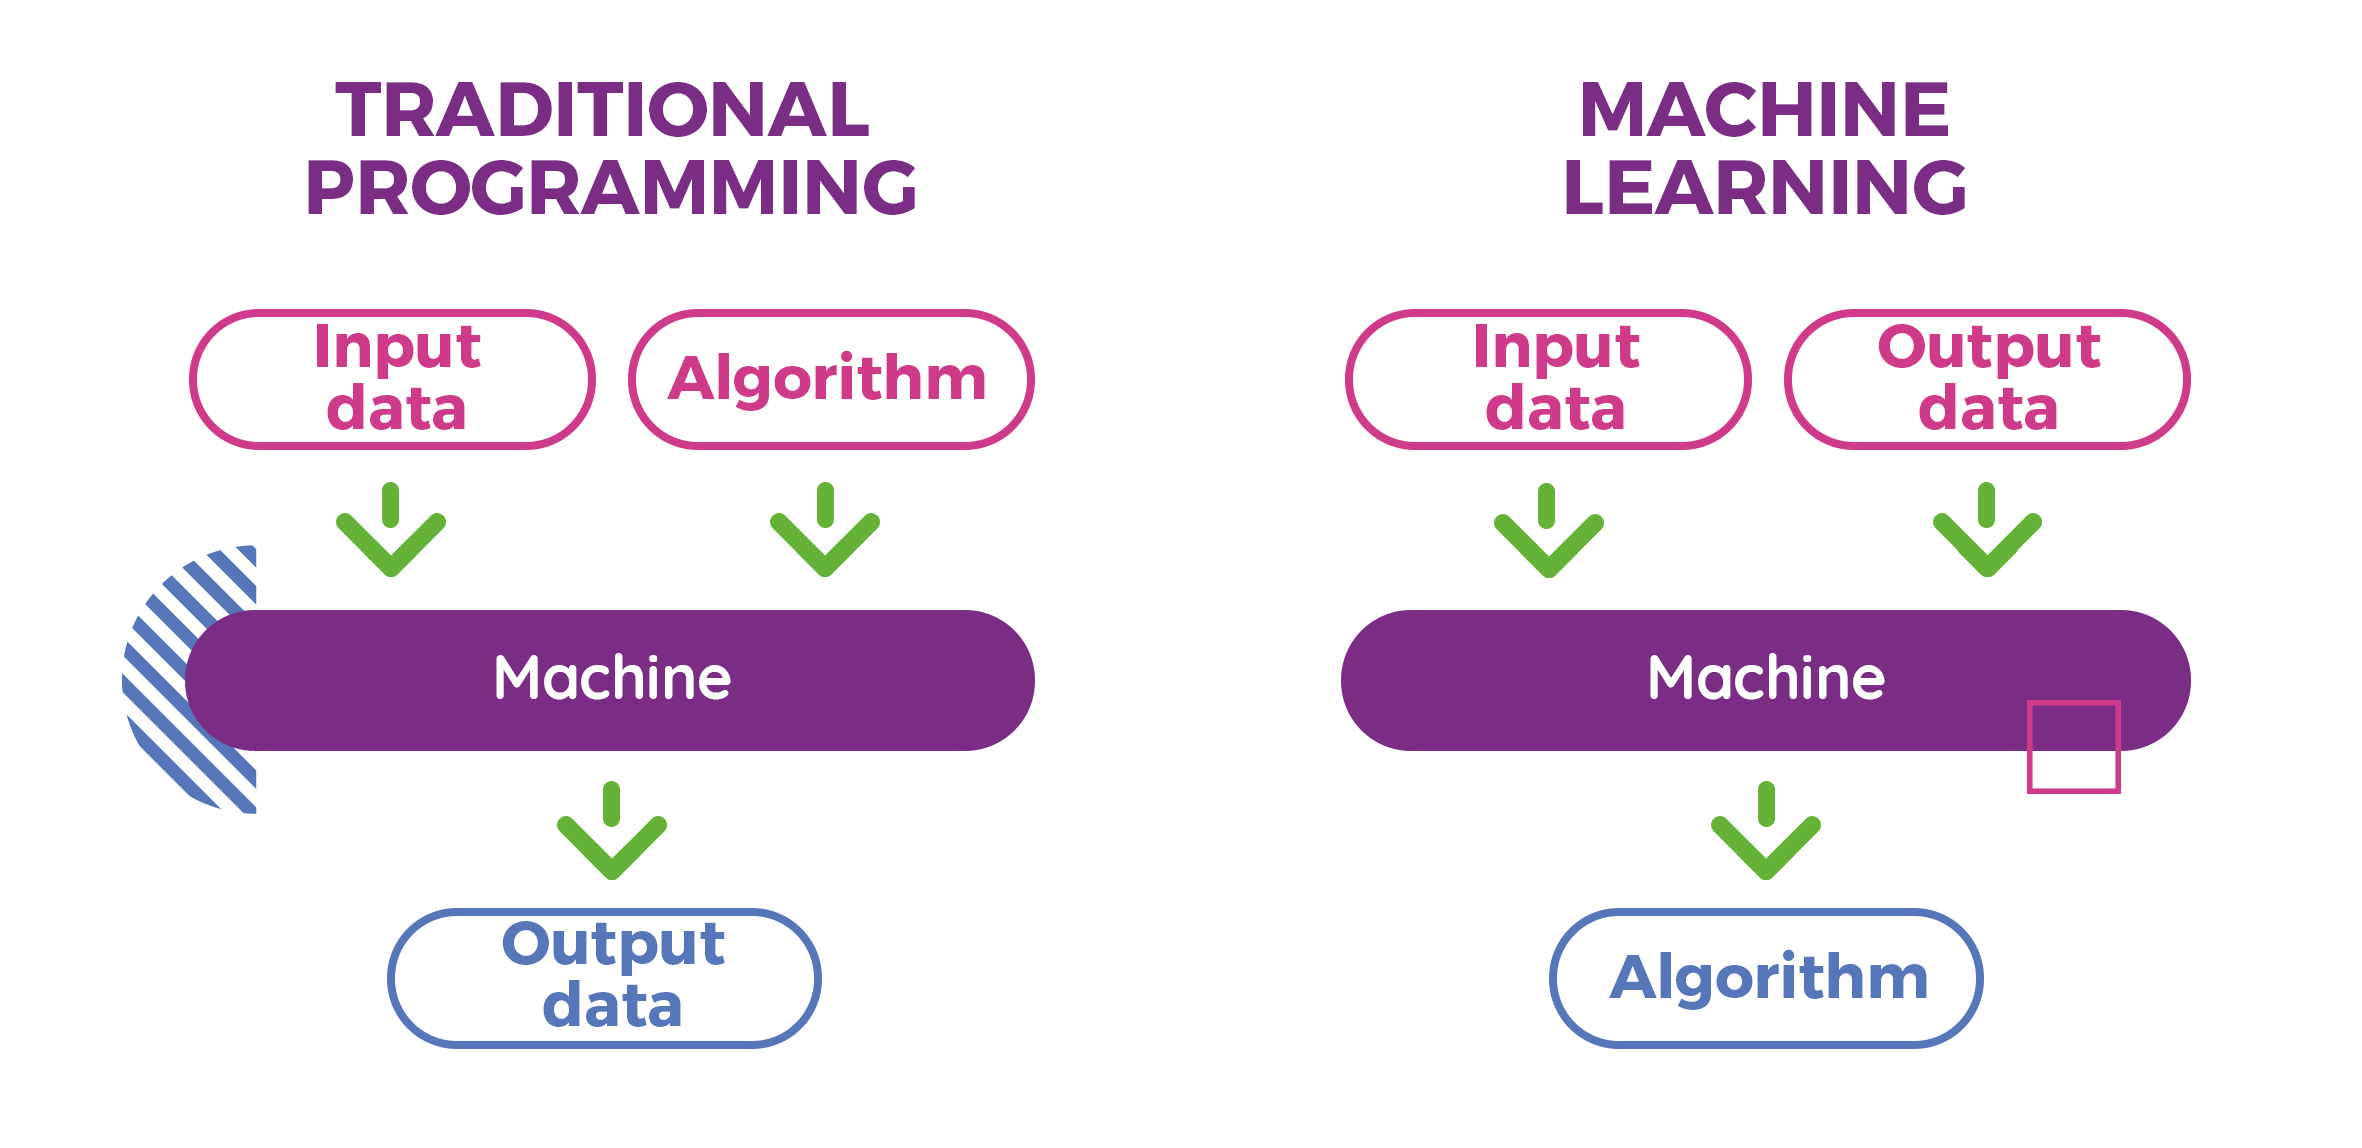 Comparison of machine learning with traditional programming